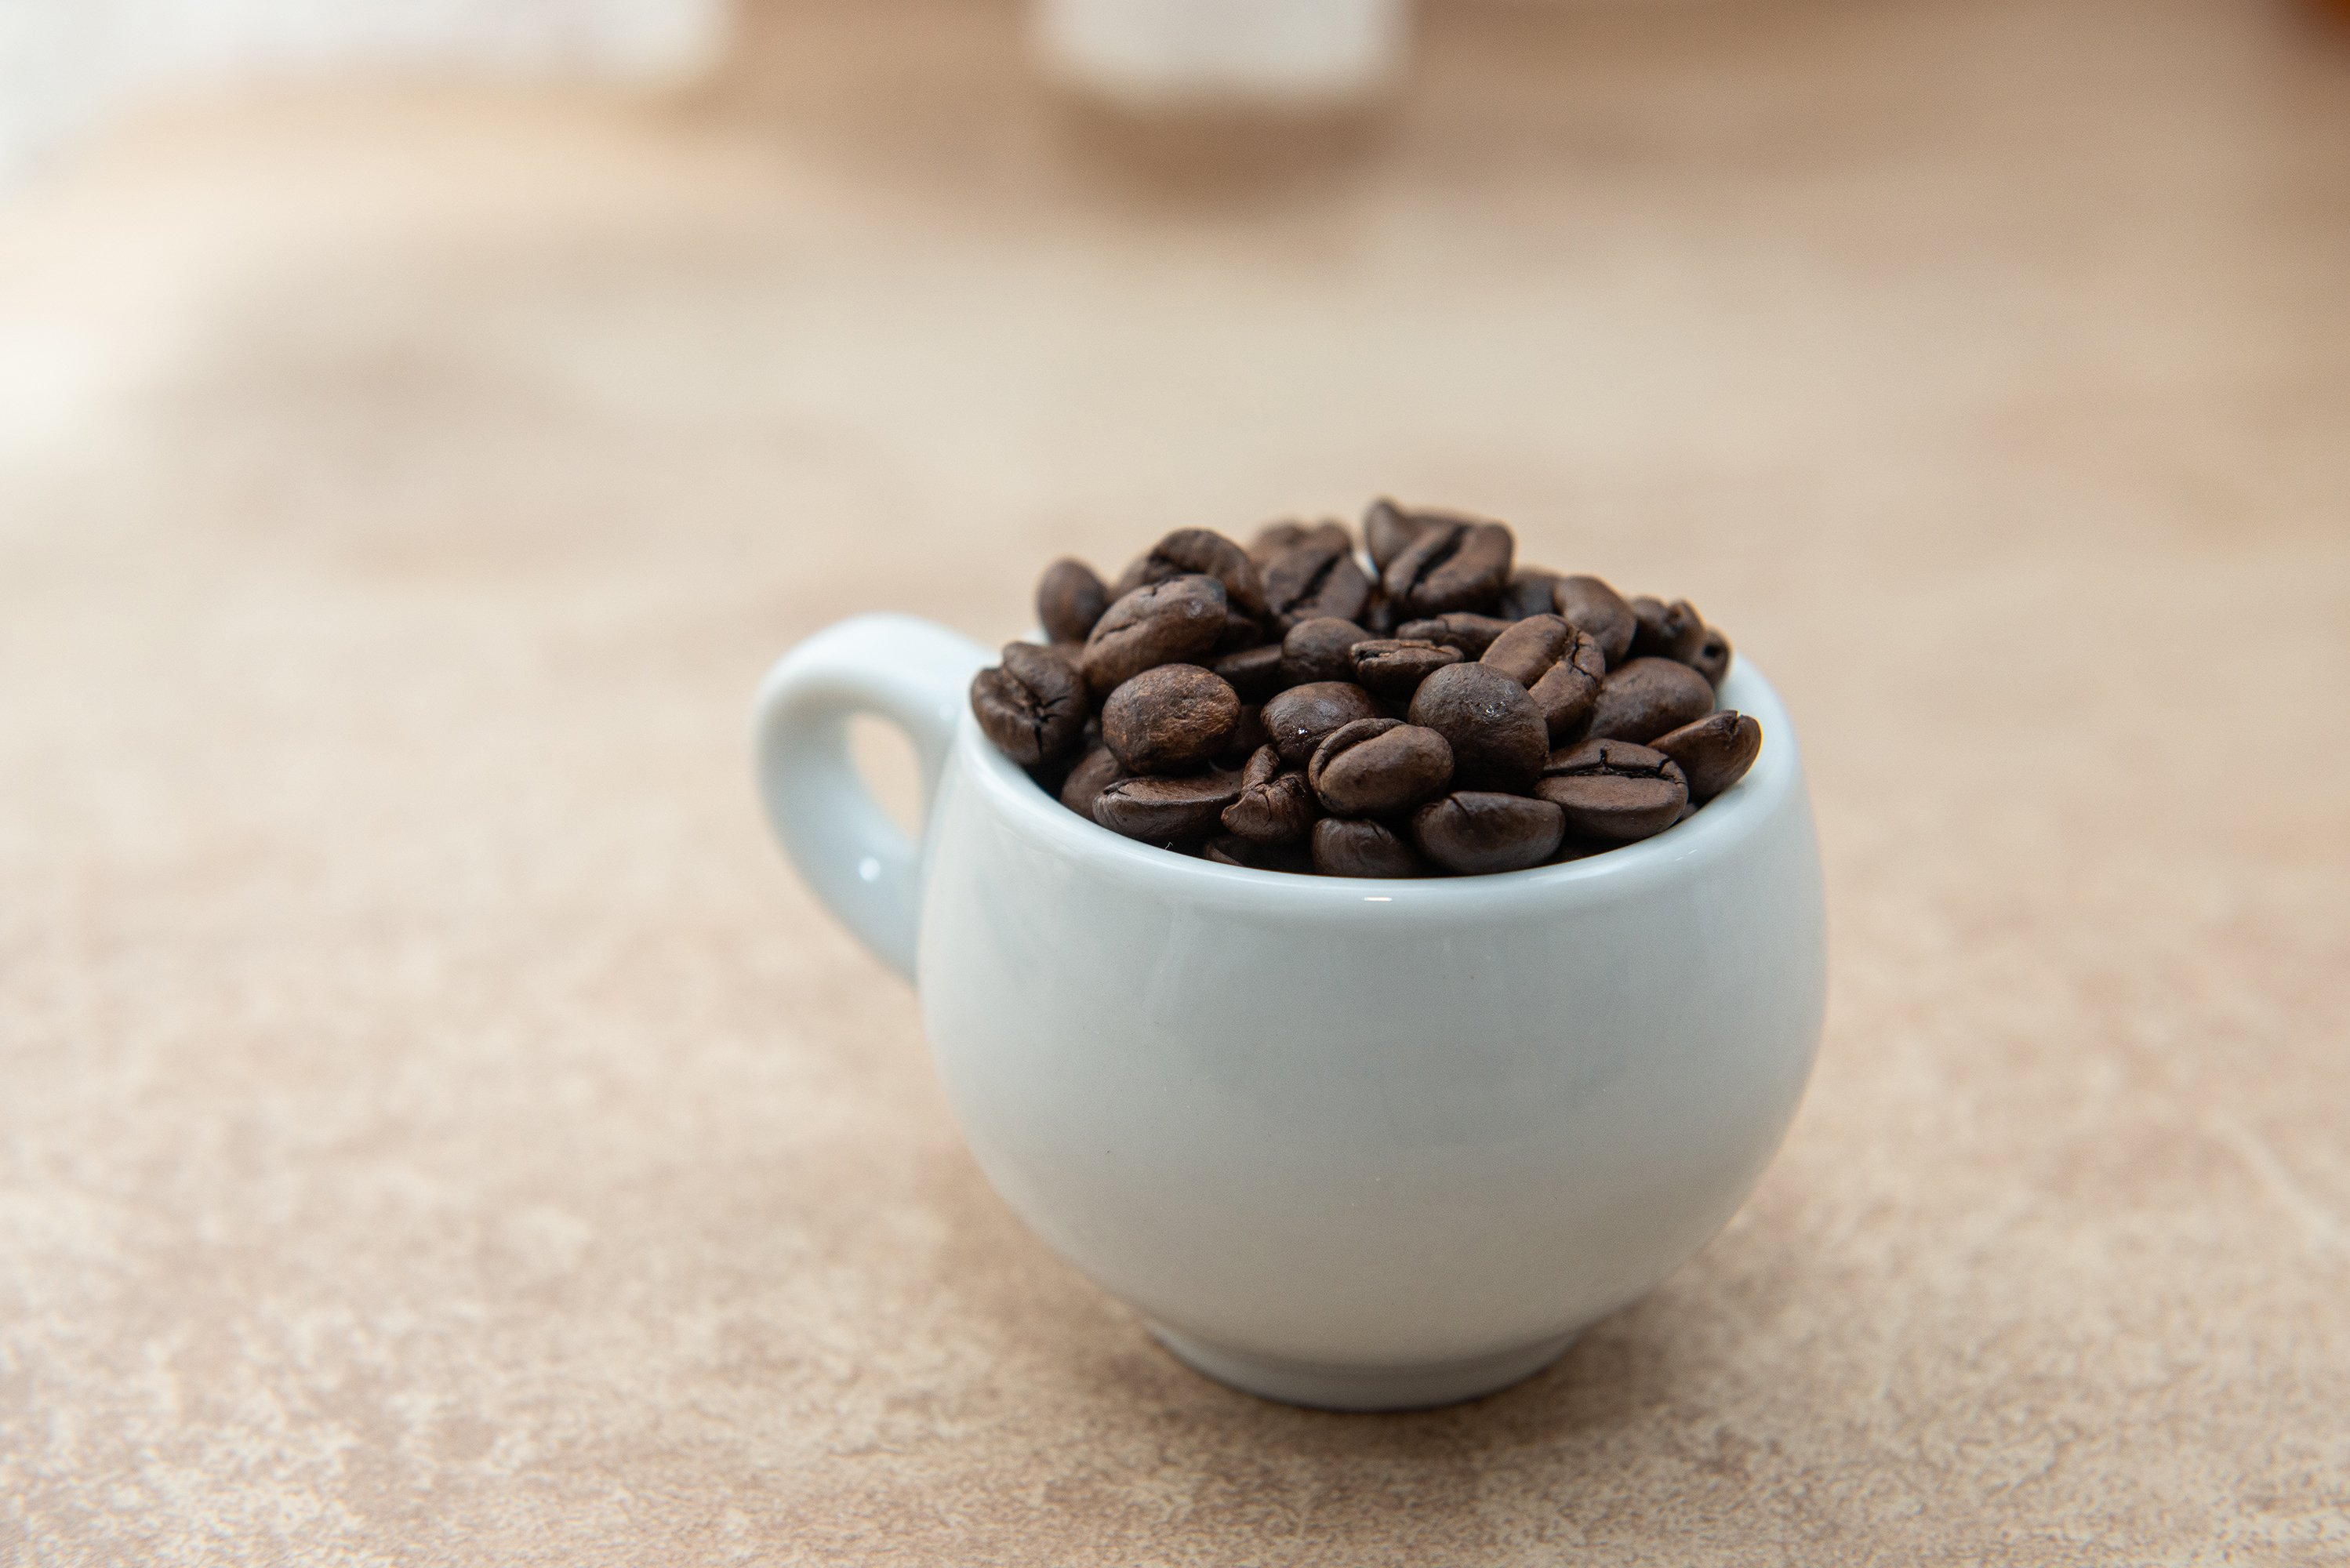 Cup of coffee full of coffee beans example image 1